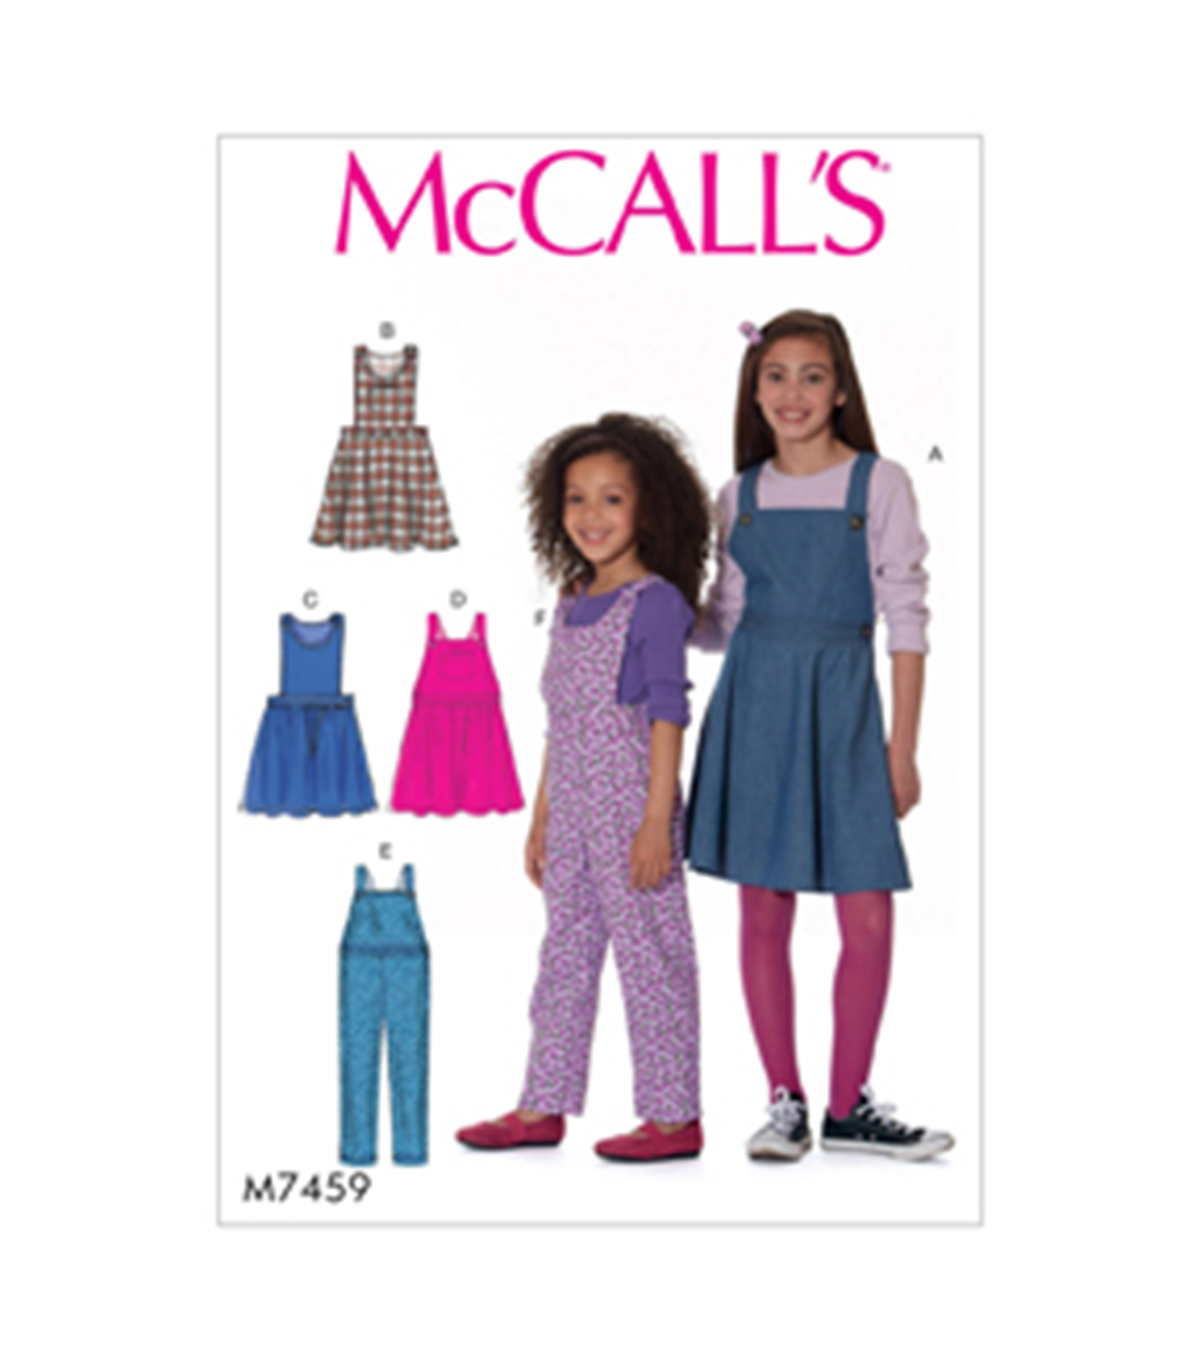 McCall\u0027s Pattern M7459 Girls\u0027 Jumpers & Overalls-Size 7-14